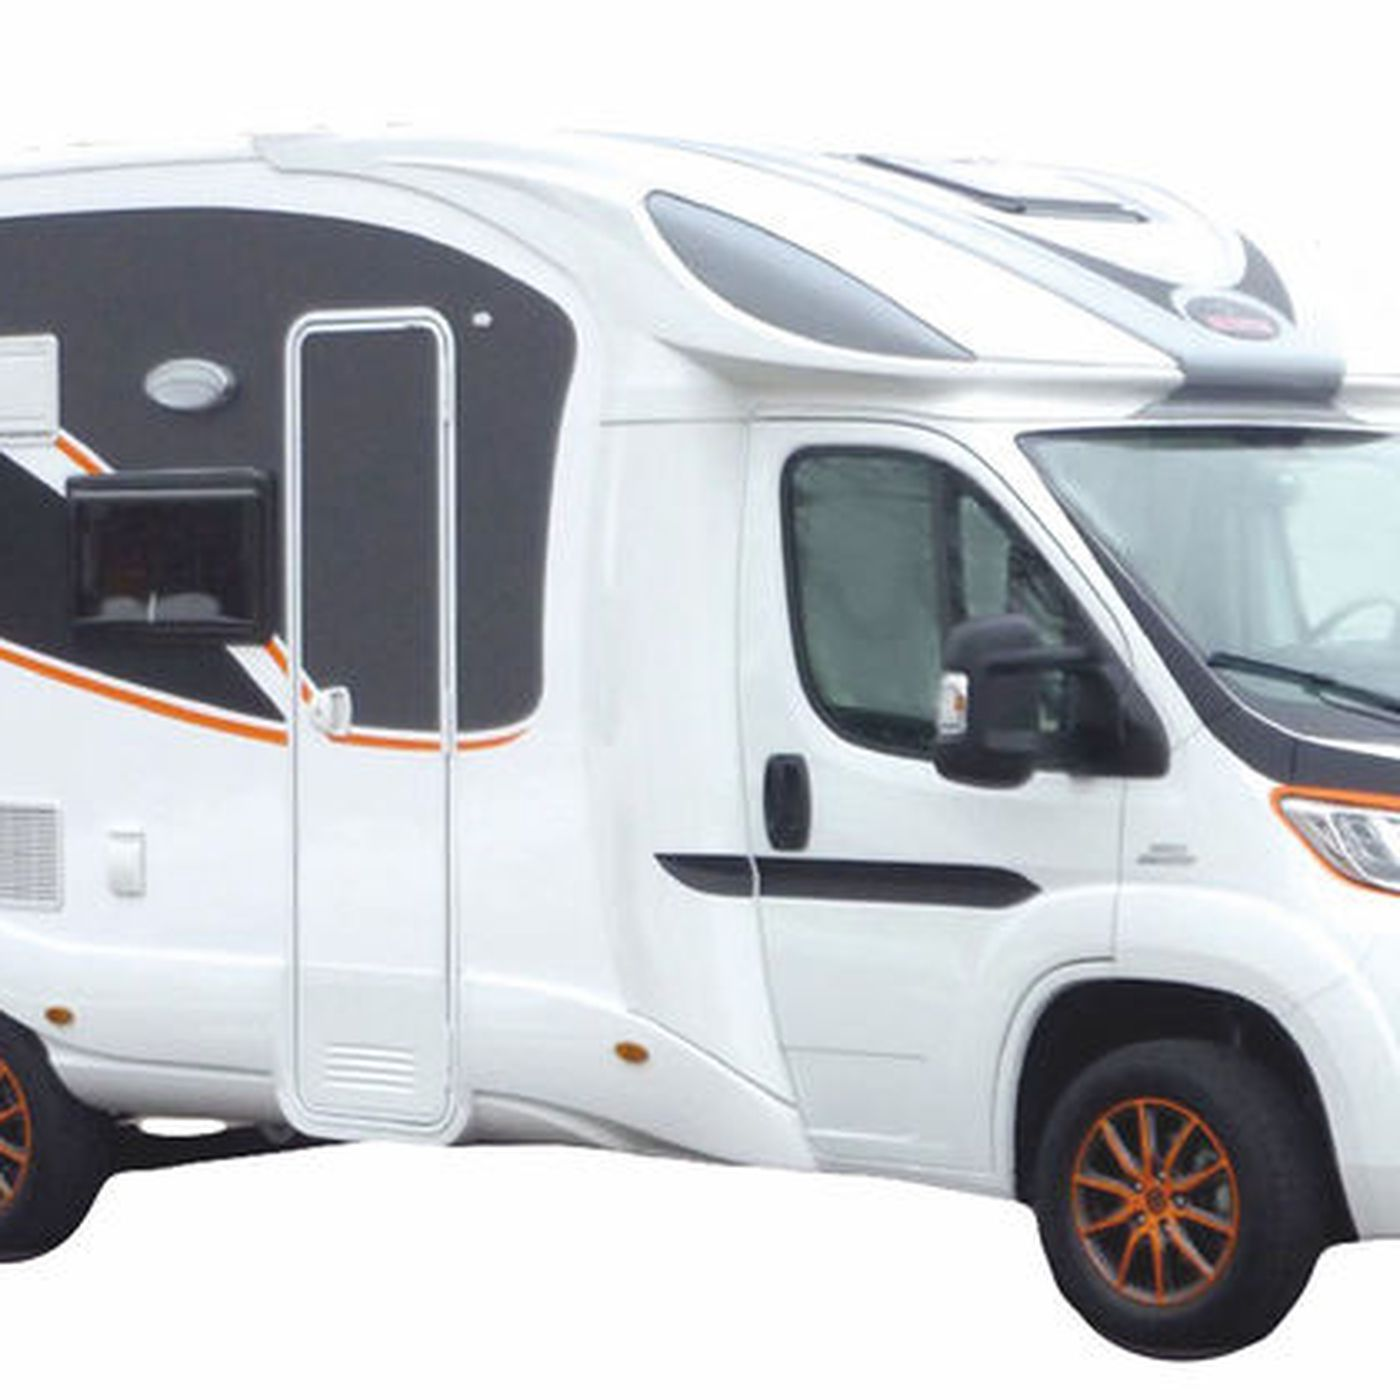 RV for sale: World's first fully electric camper will debut in 2019